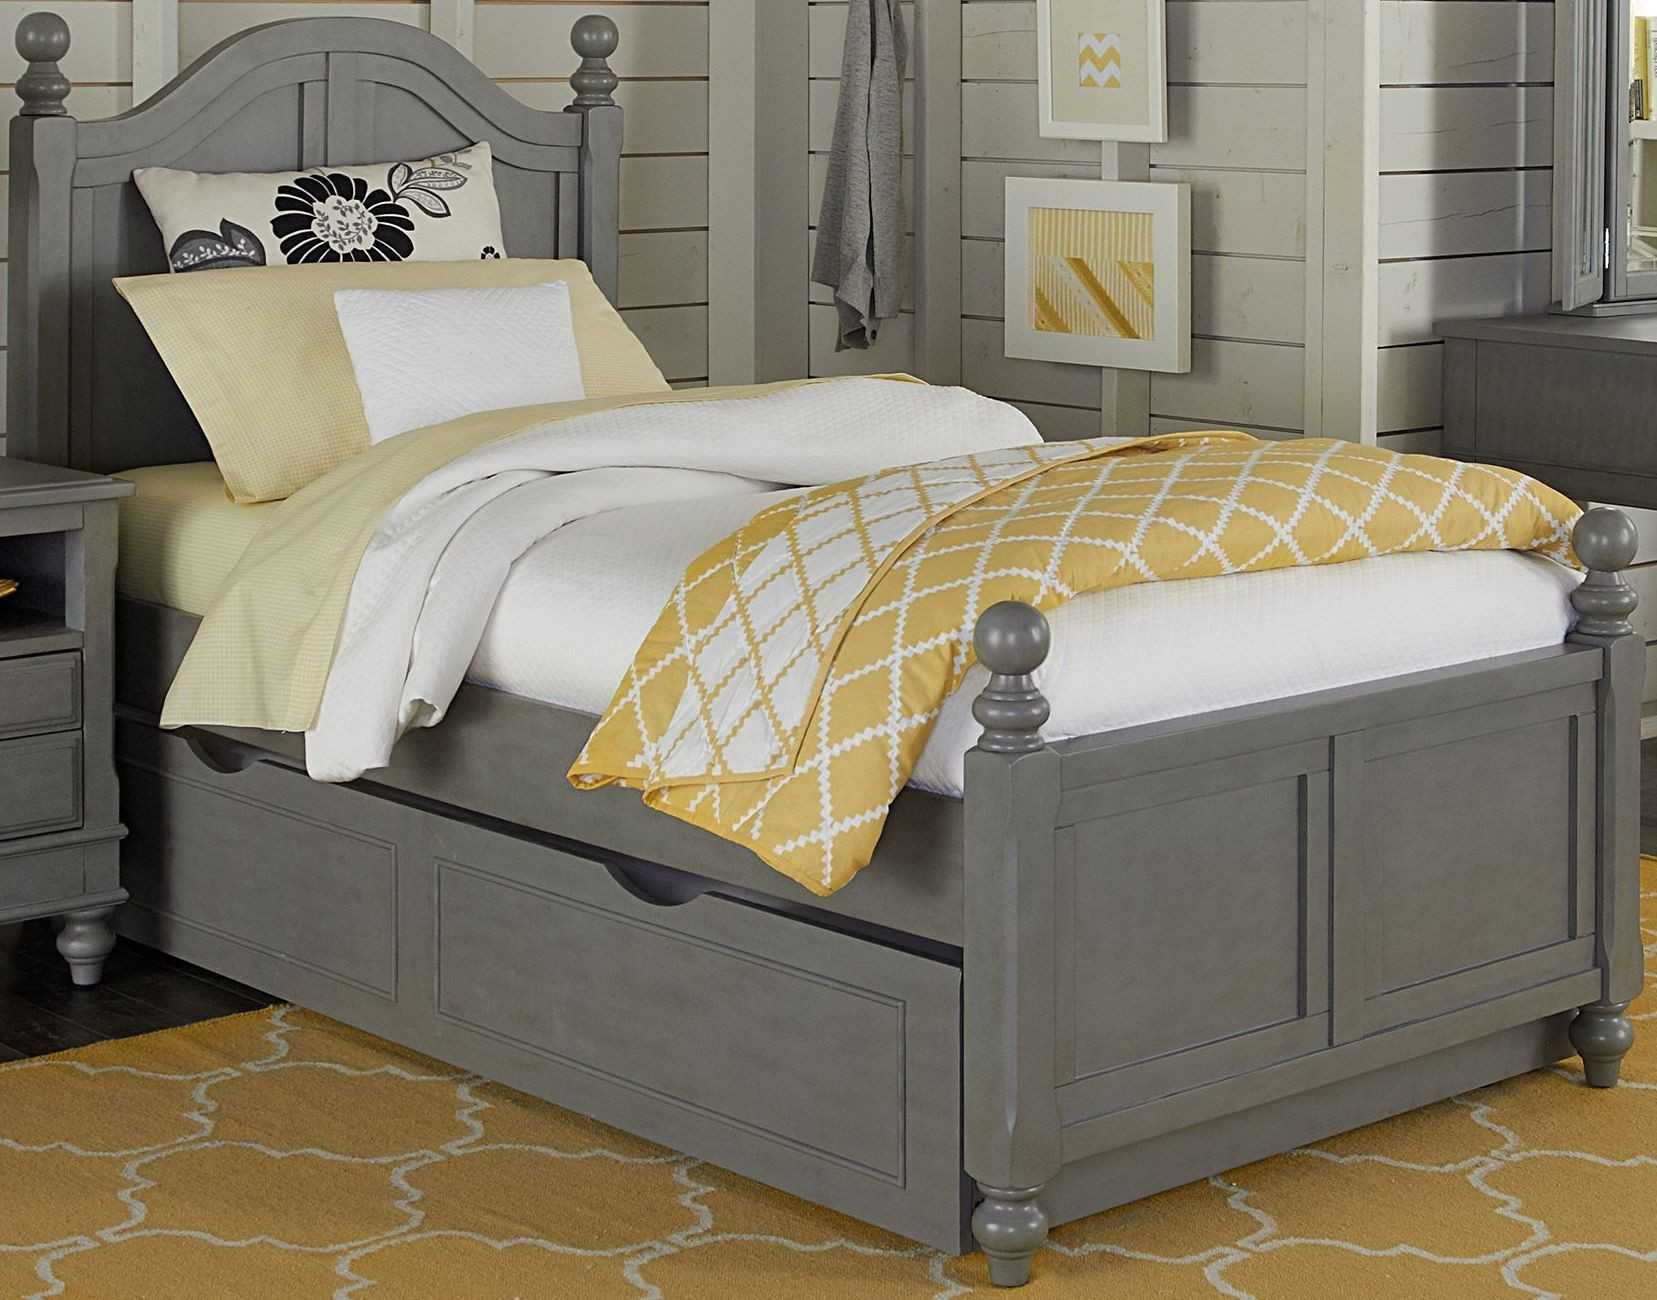 Lake house stone payton youth panel bedroom set with trundle from ne kids coleman furniture Lake home bedroom furniture